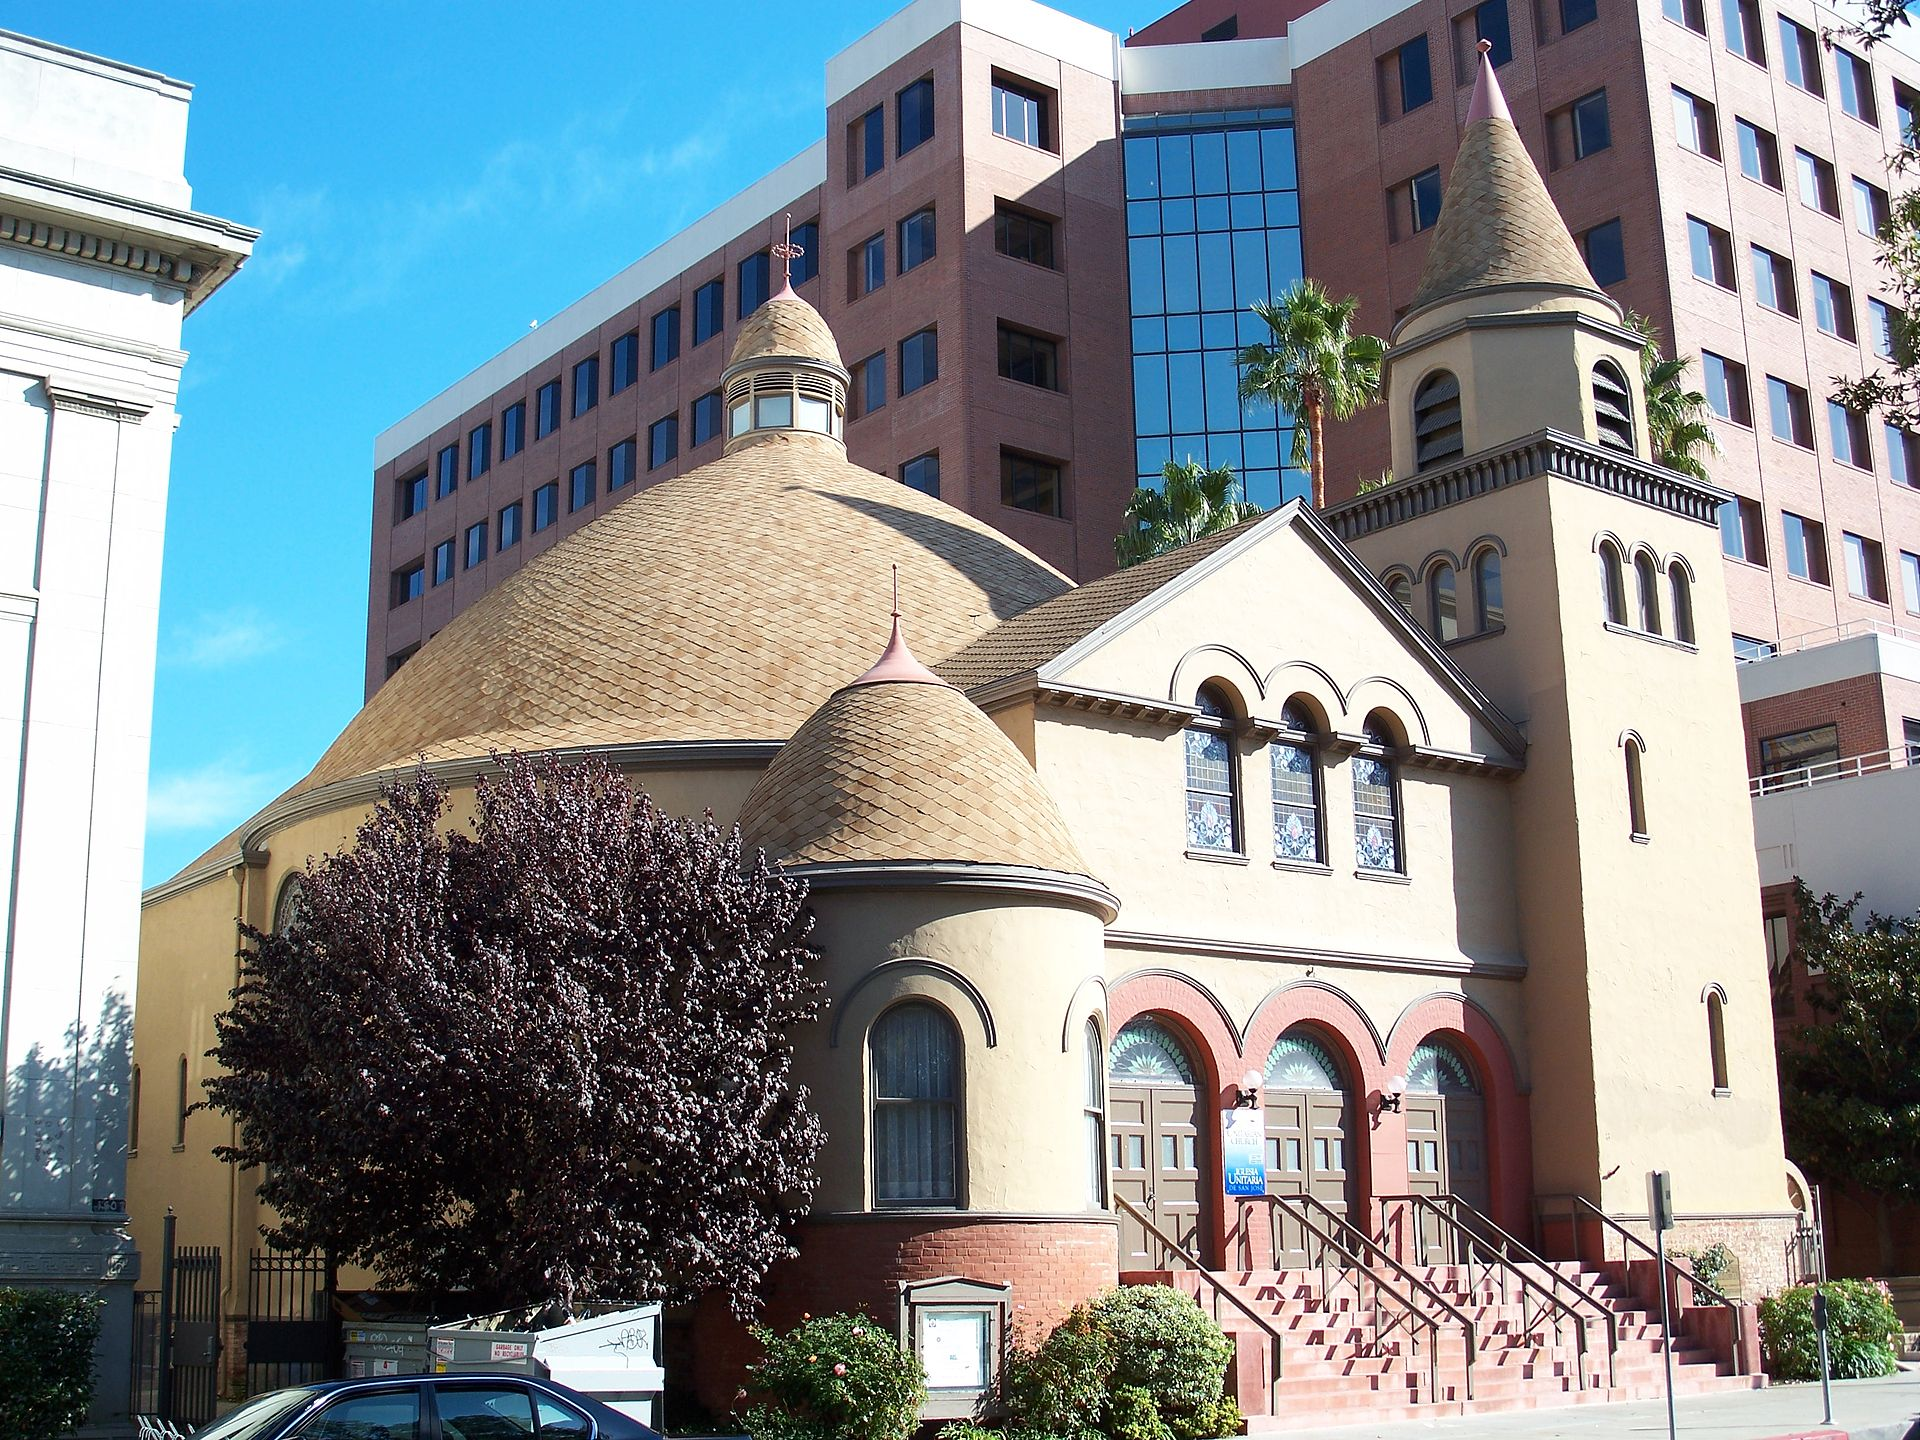 The First Unitarian Church of San Jose was built in 1892.